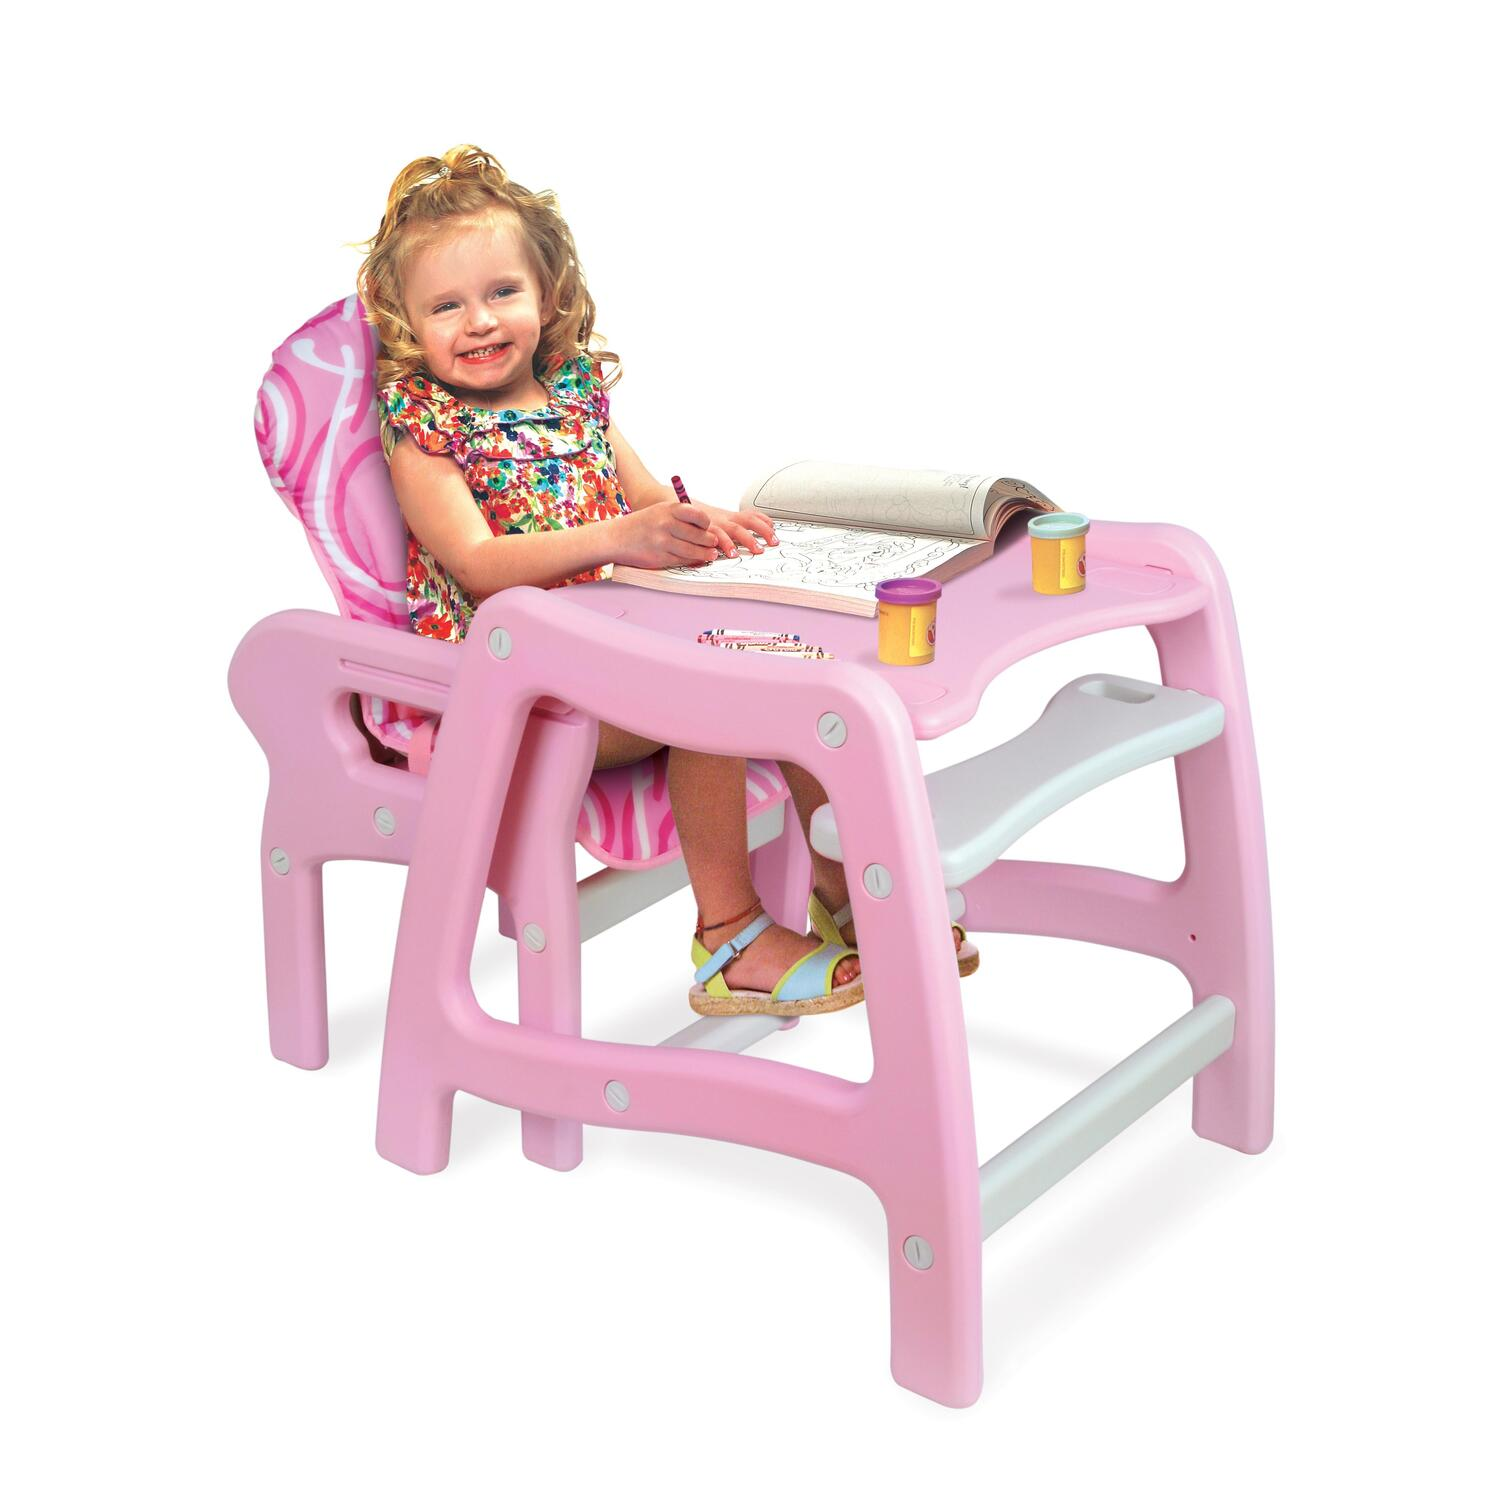 Chairs For Babies Envee Baby High Chair With Playtable Conversion From